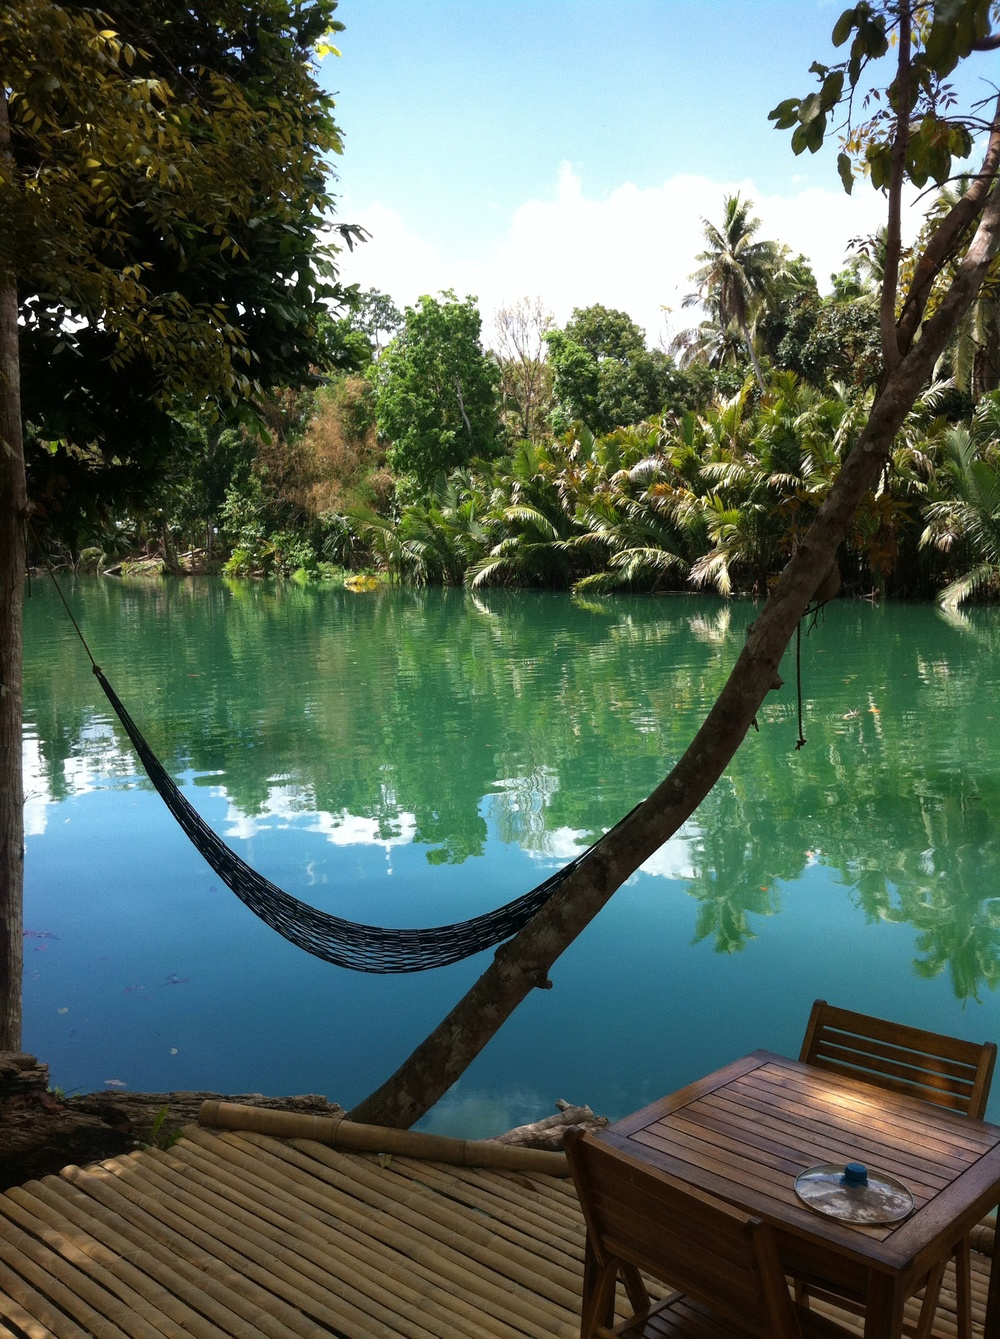 Relax in nature by the Loboc river